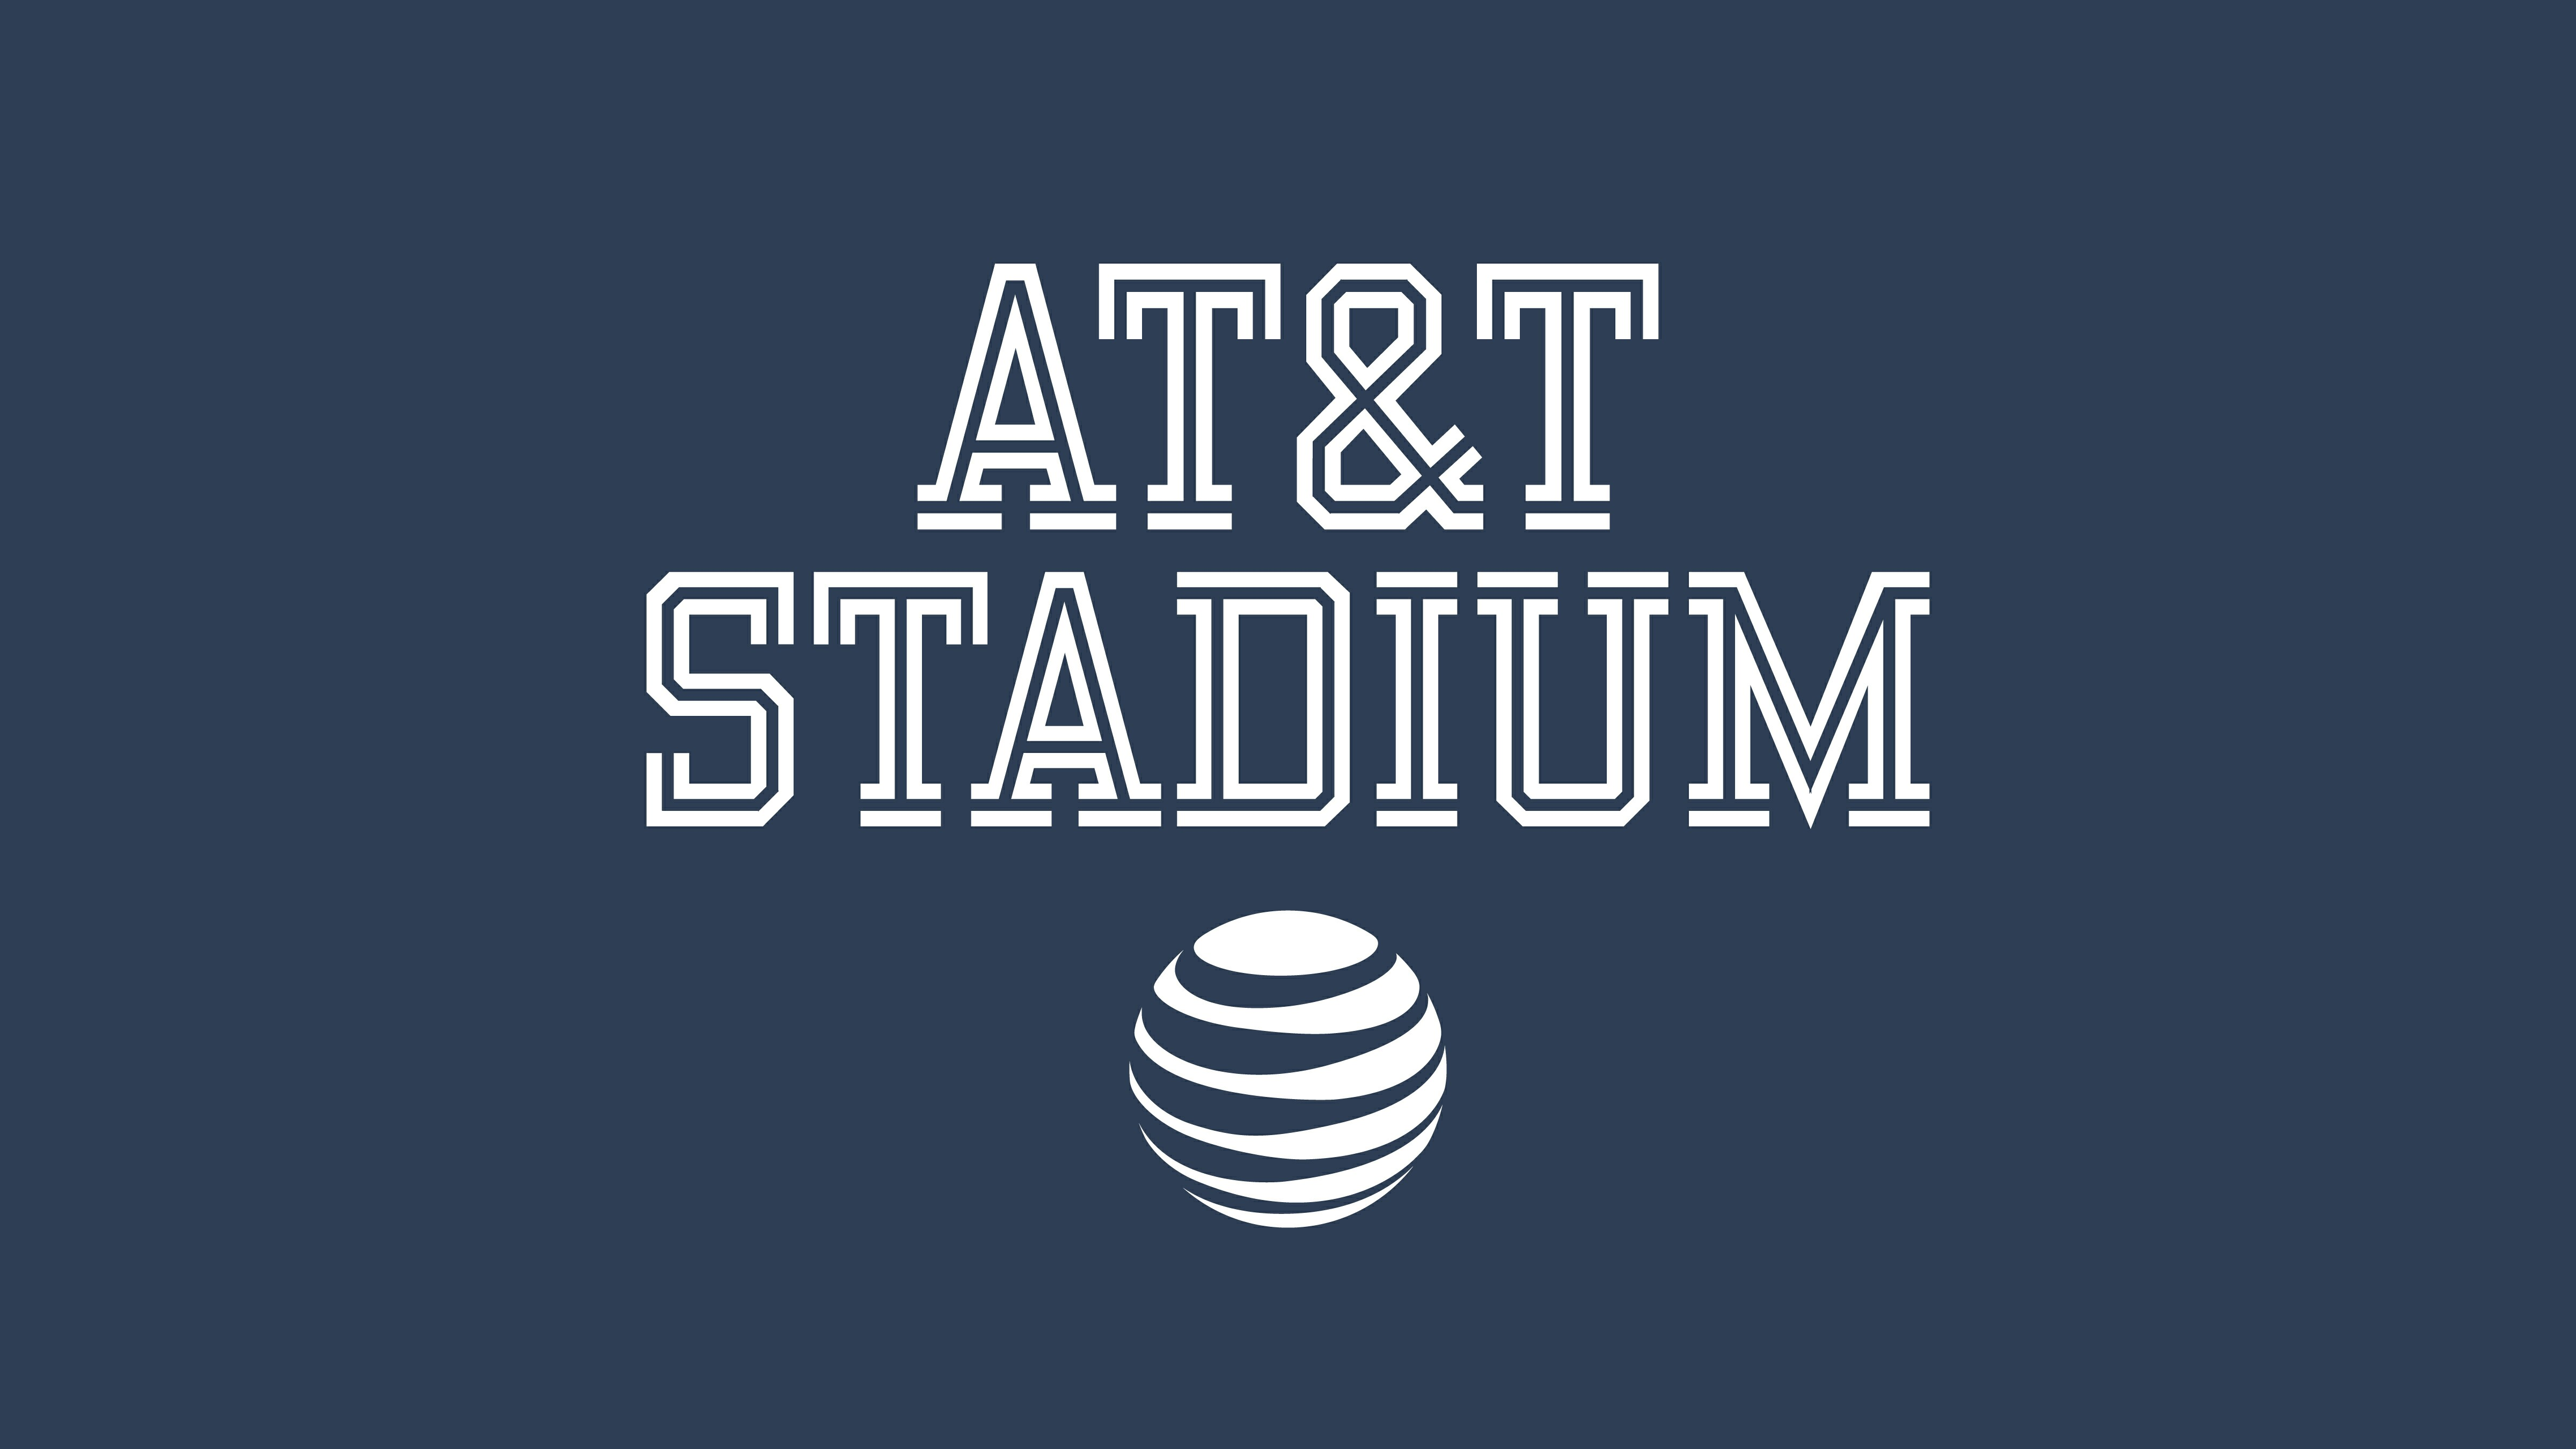 AT&T Stadium - Home of the Dallas Cowboys